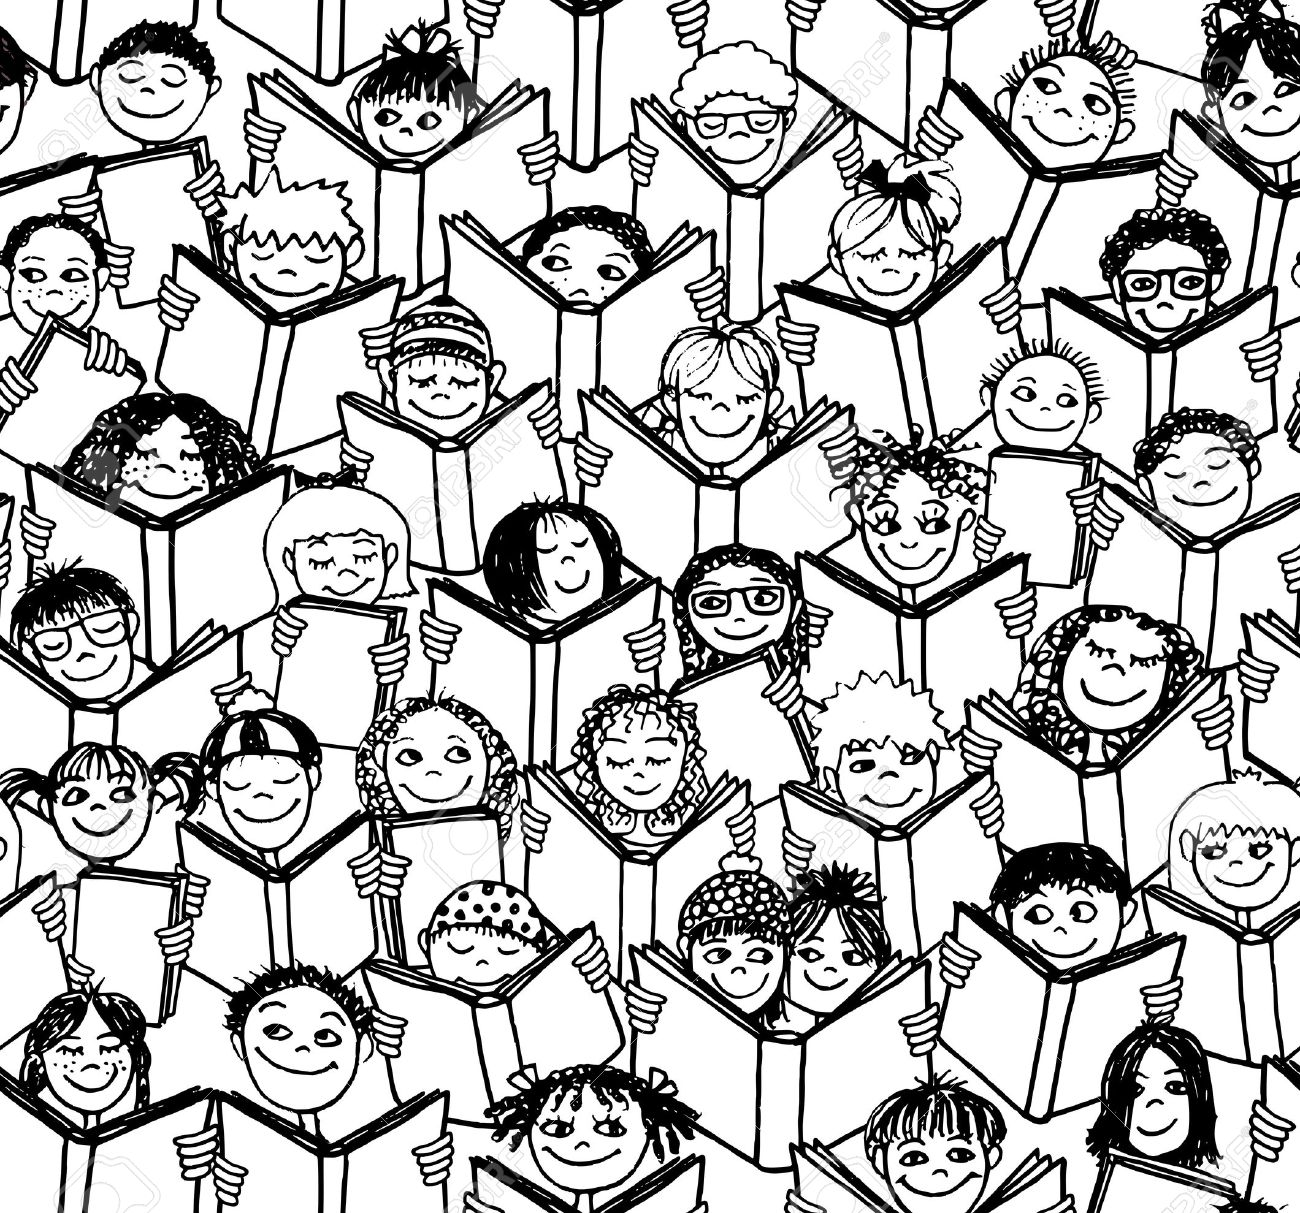 hand drawn seamless pattern of kids reading books - black and